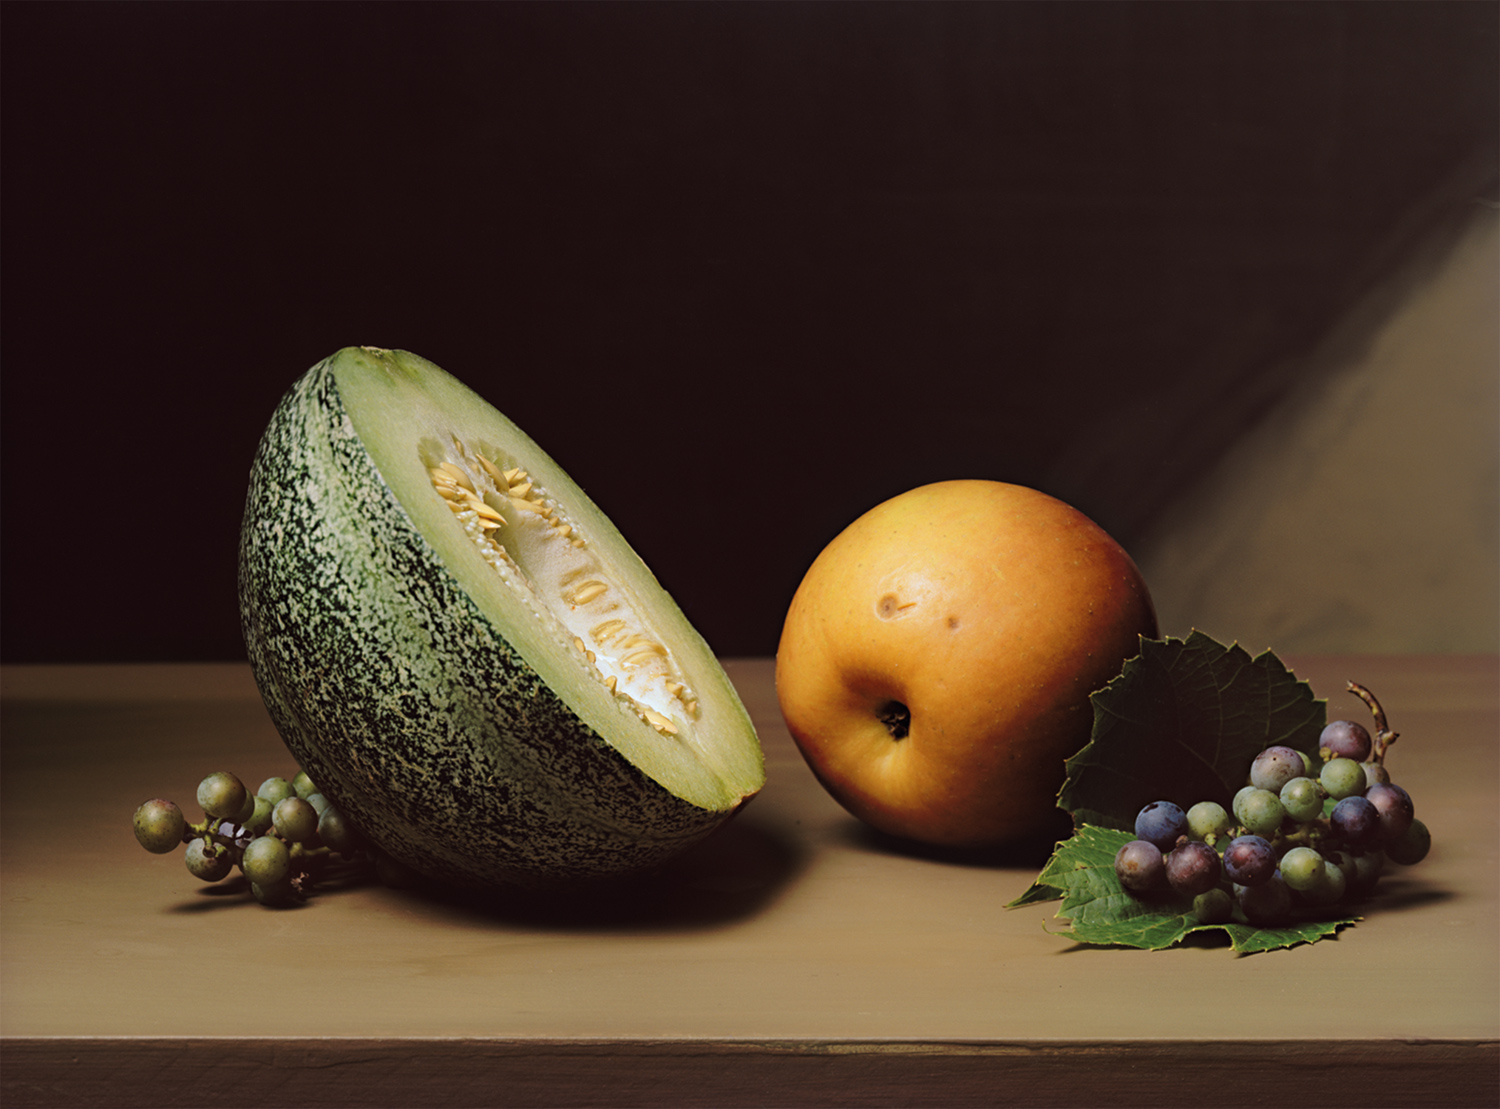 Plate 28 - Still Life with Anne Arundel Melon